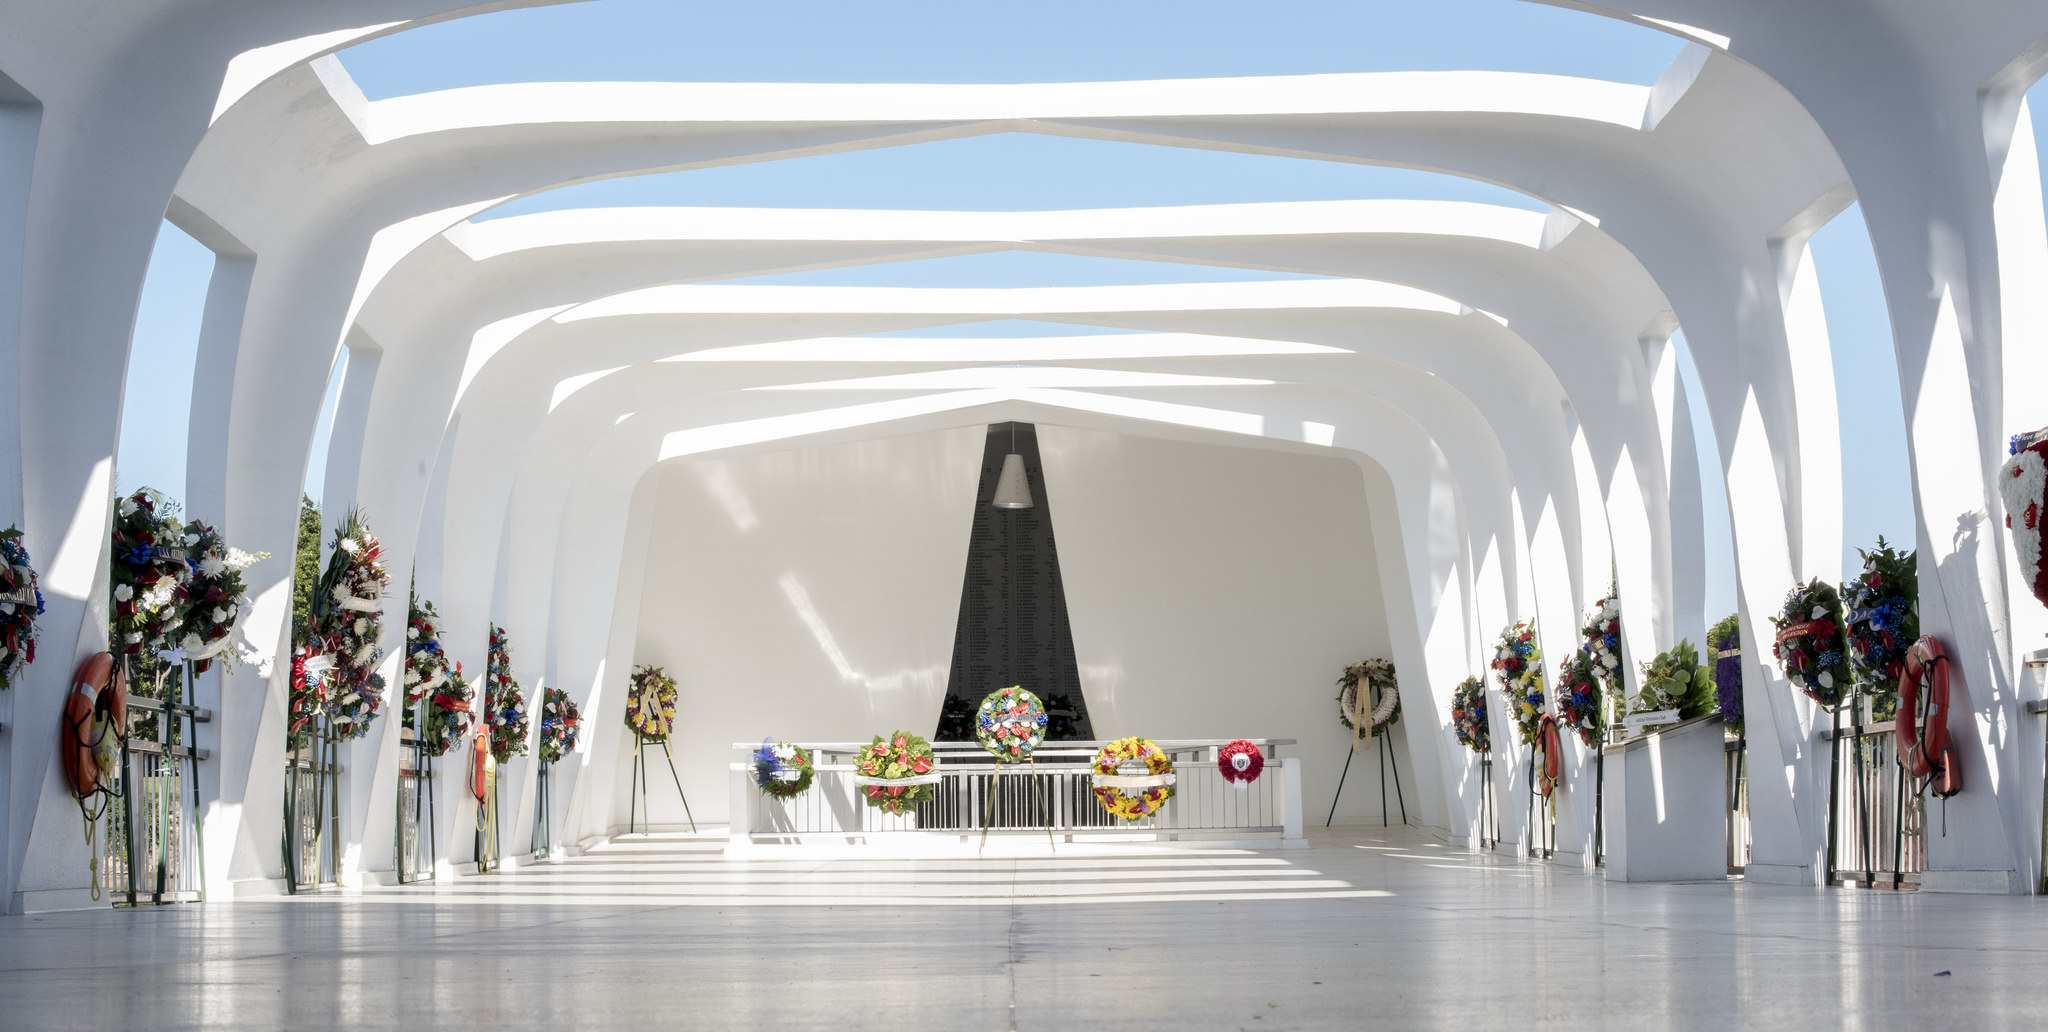 Honorary wreaths adorn the USS Arizona Memorial prior to a floral tribute during the 76th Commemoration Event of the attacks on Pearl Harbor